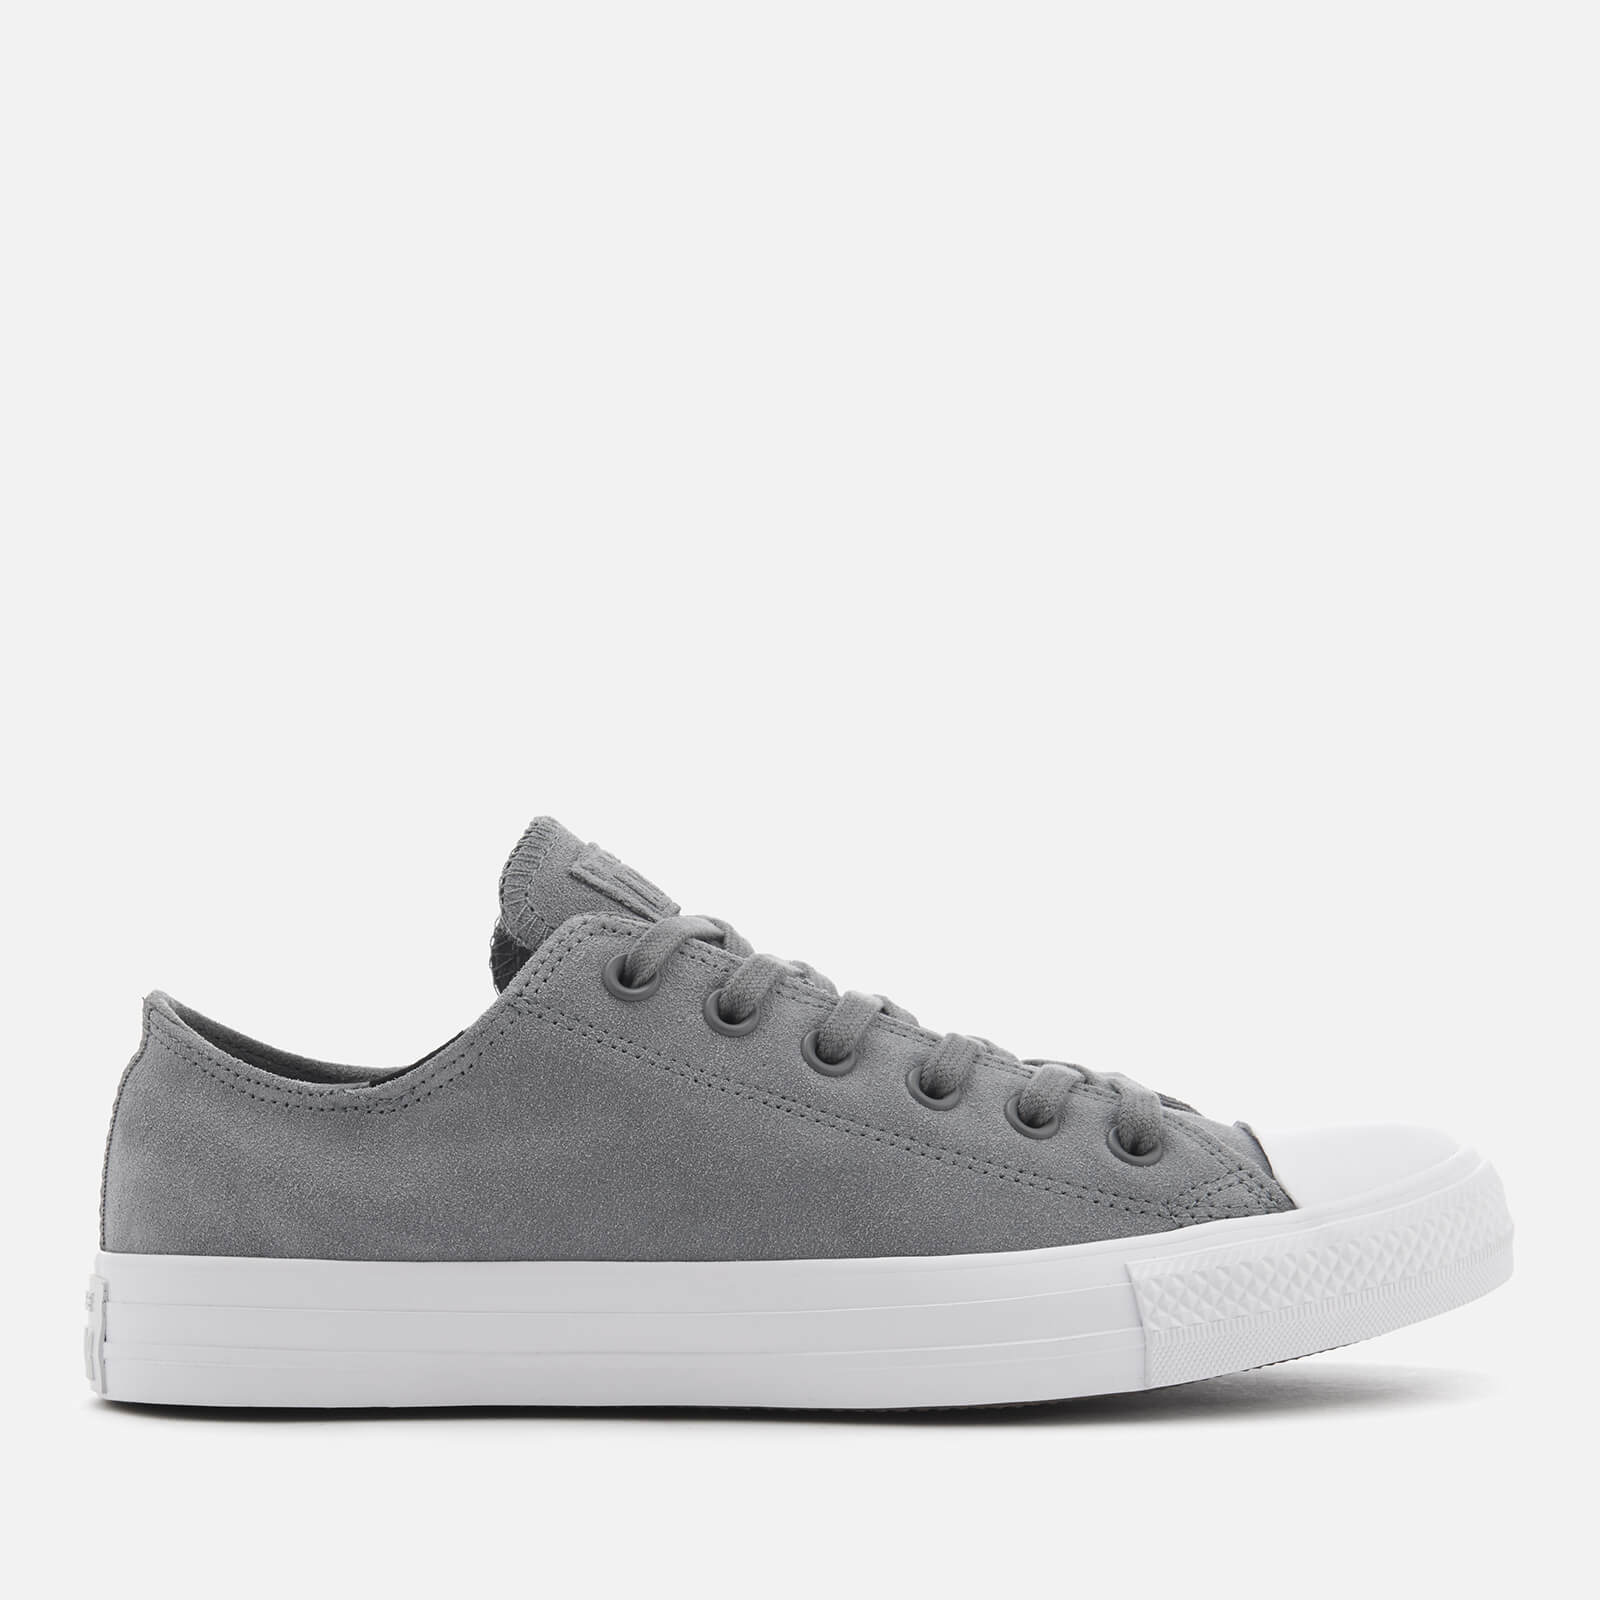 6a670285b436 Converse Men s Chuck Taylor All Star Ox Trainers - Cool Grey Cool  Grey White Clothing